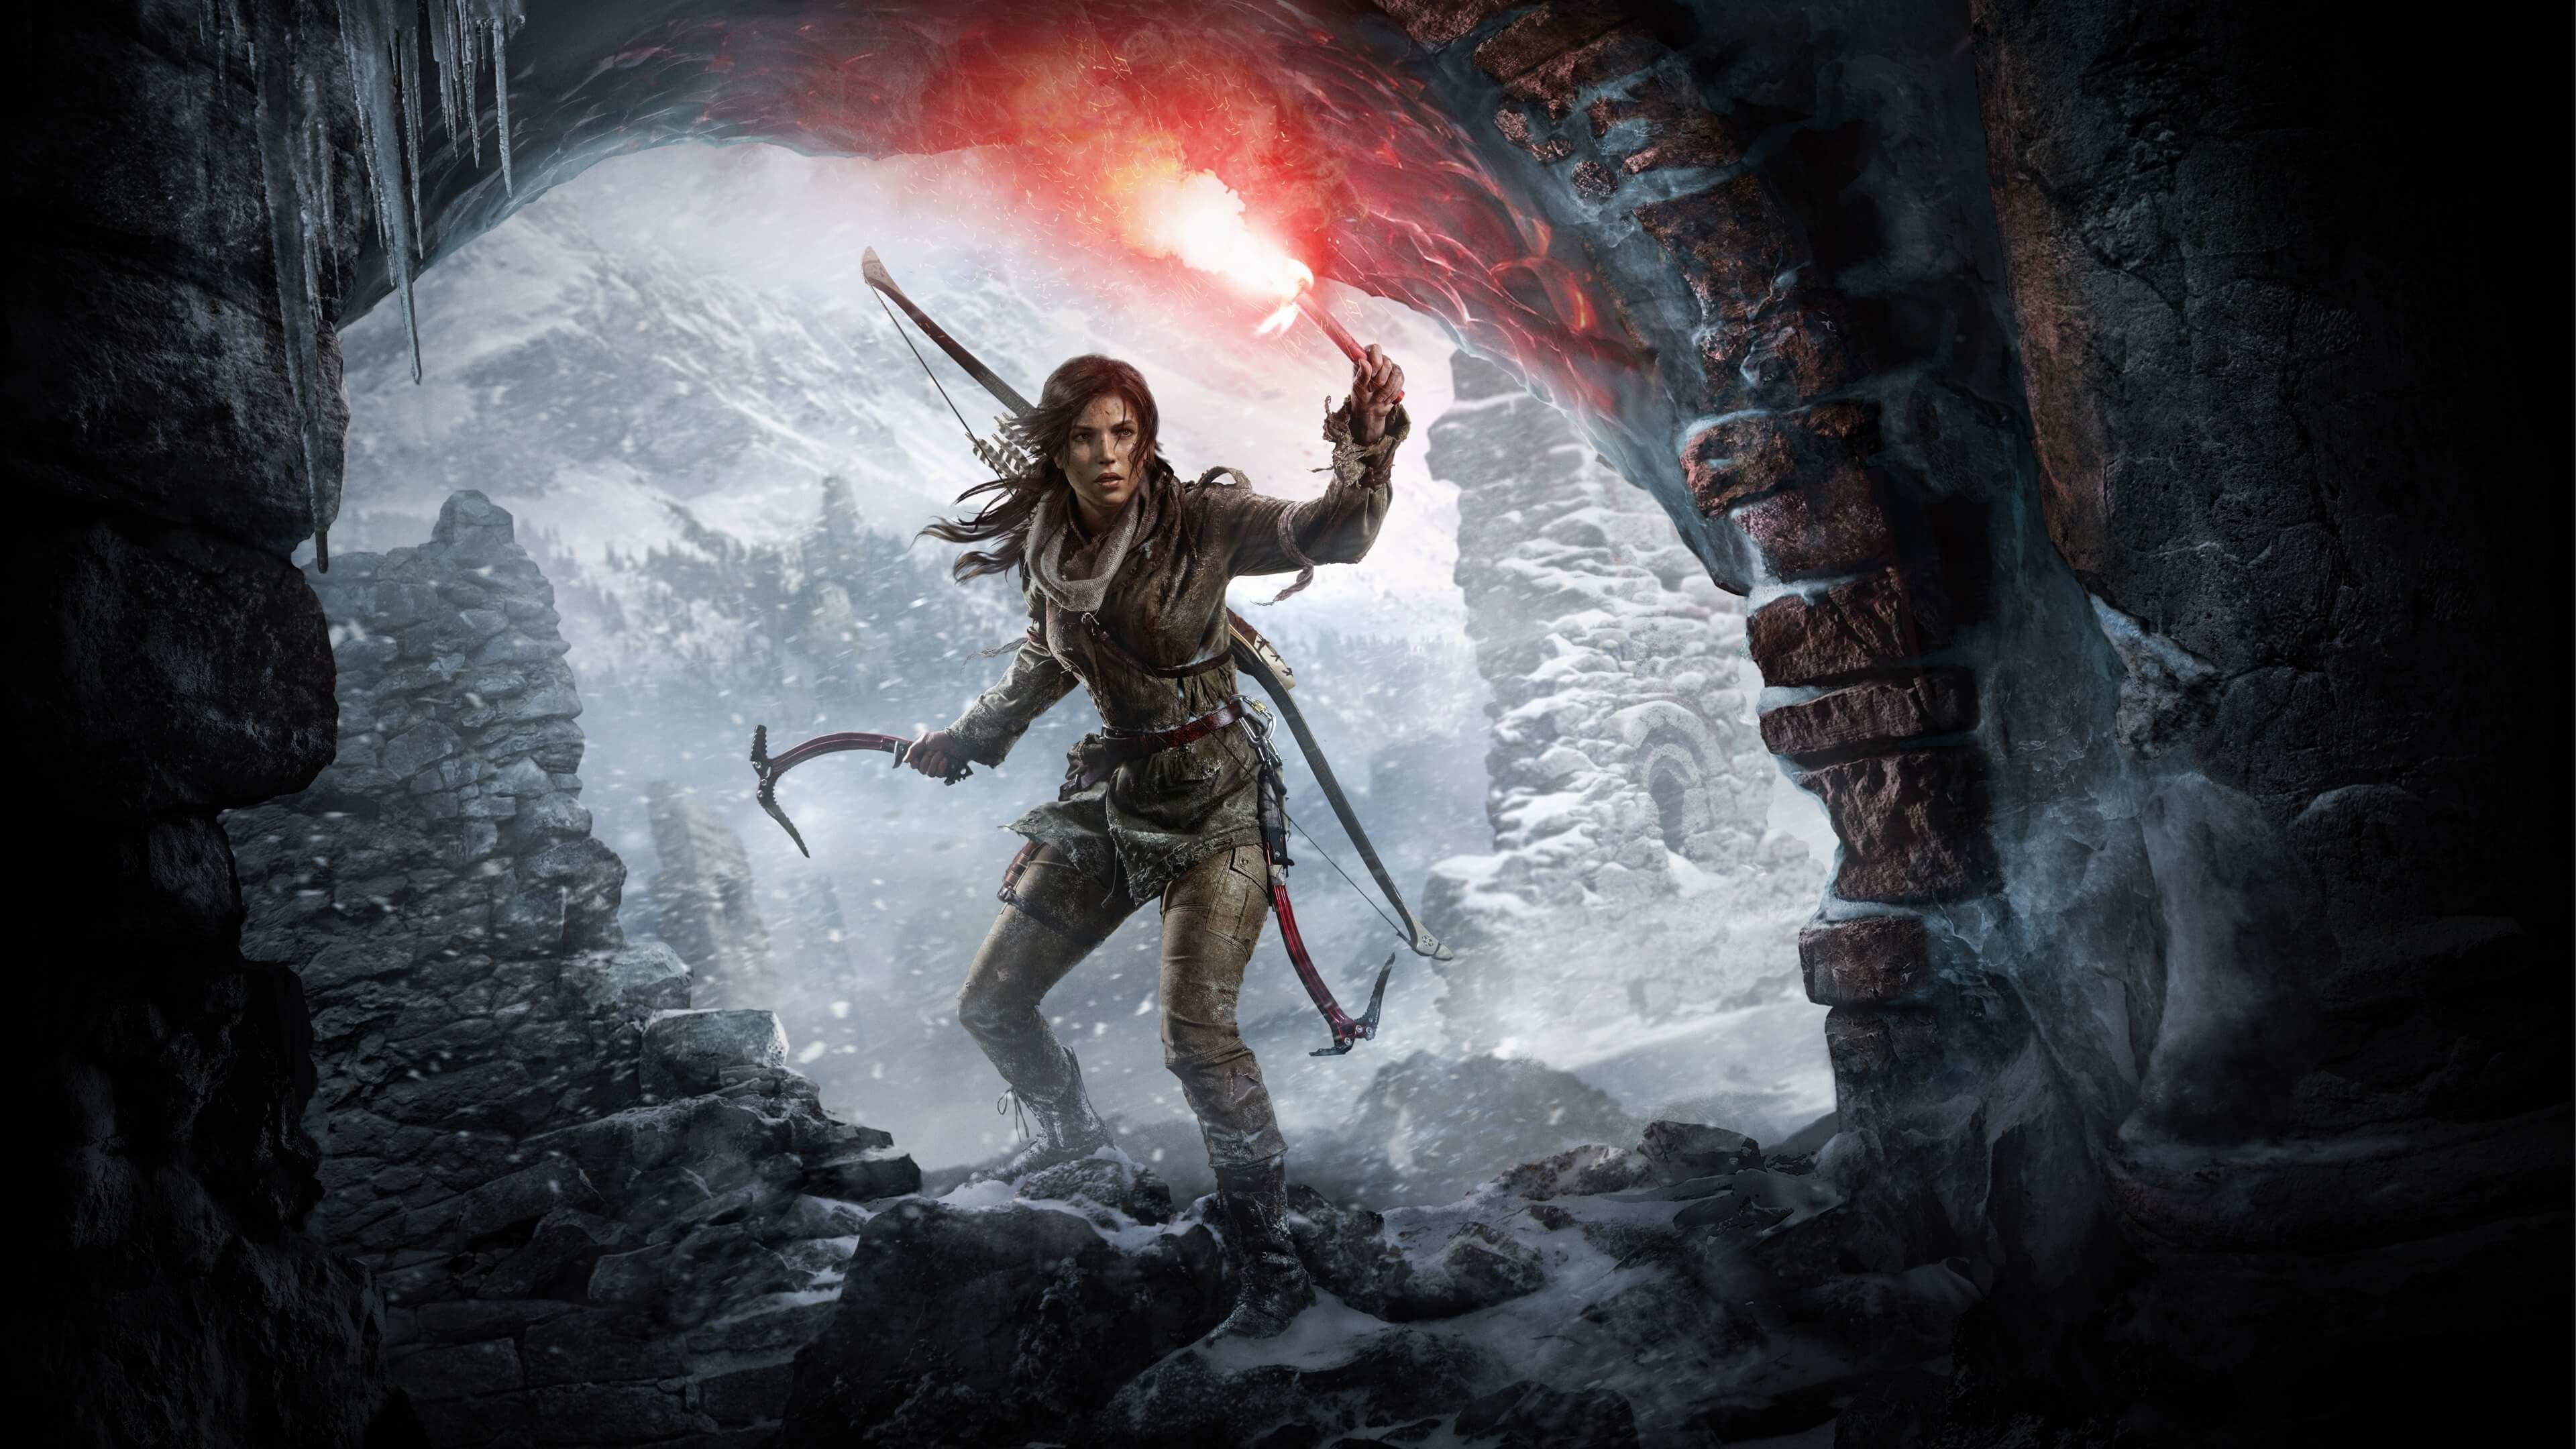 rise of tomb raider 1 3840x2160 wallpapers games pinterest